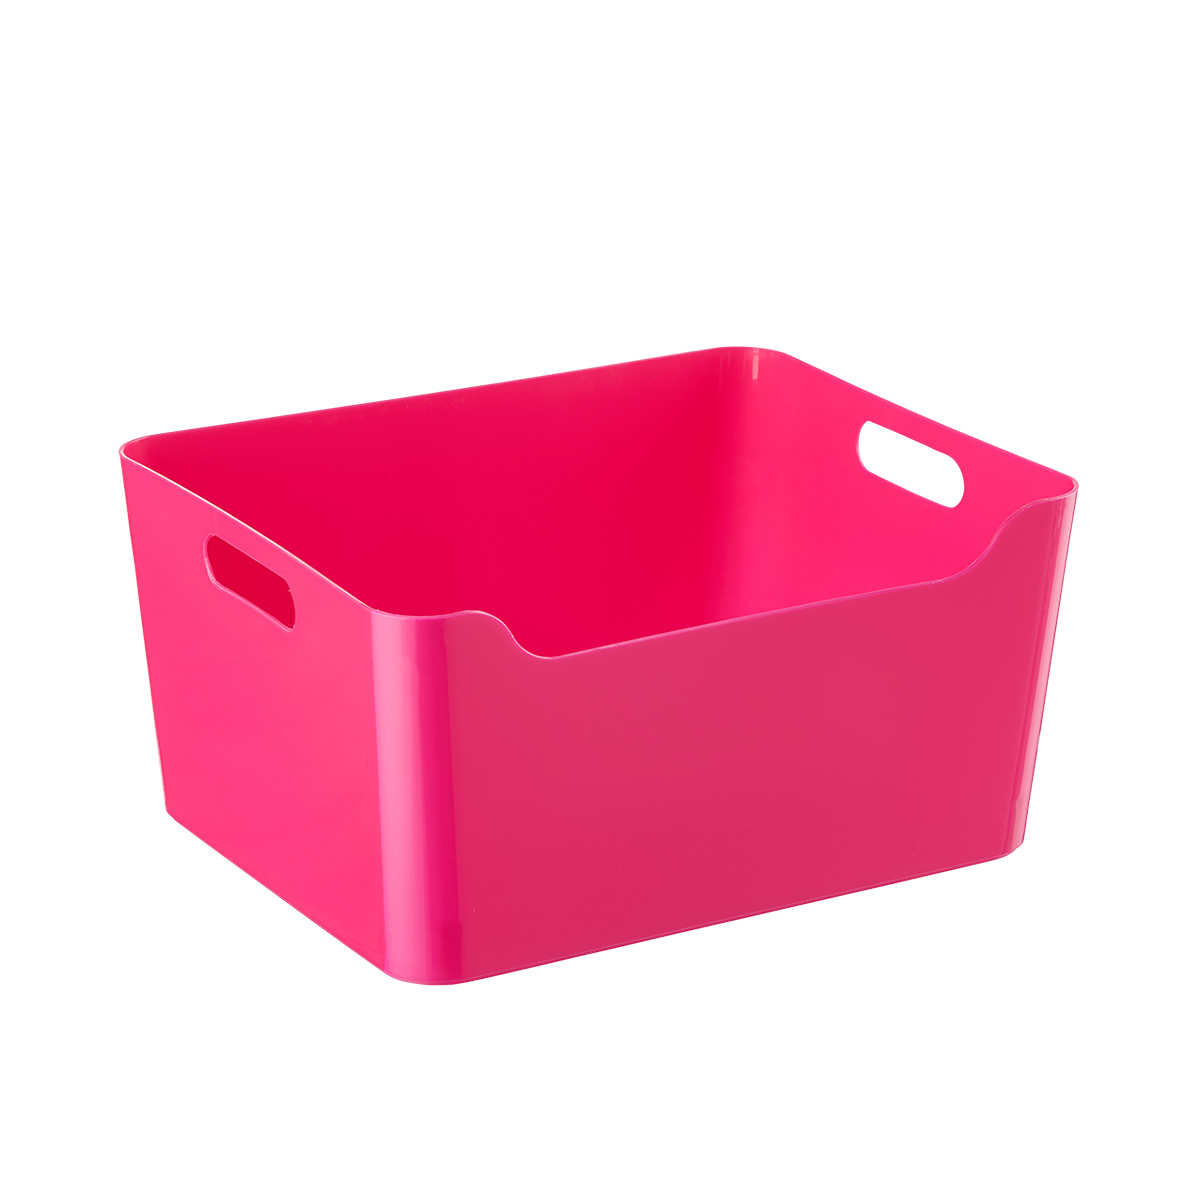 Pink Bins Fuschia Plastic Storage Bins With Handles